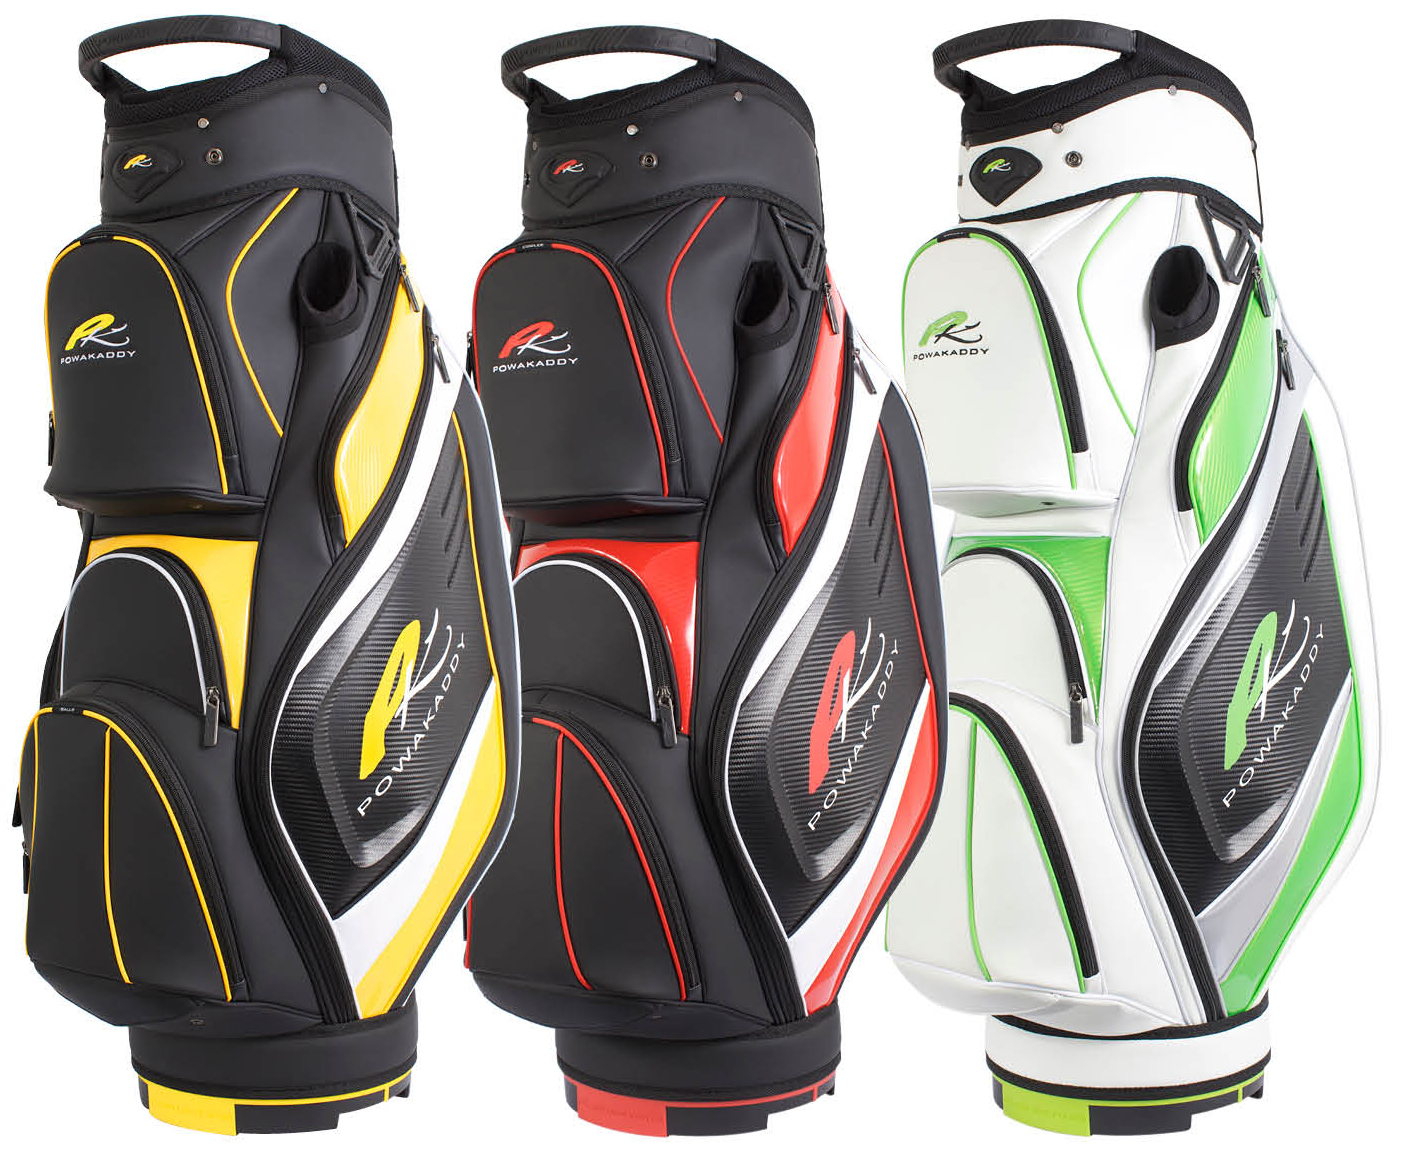 PowaKaddy unveil striking cart bag range